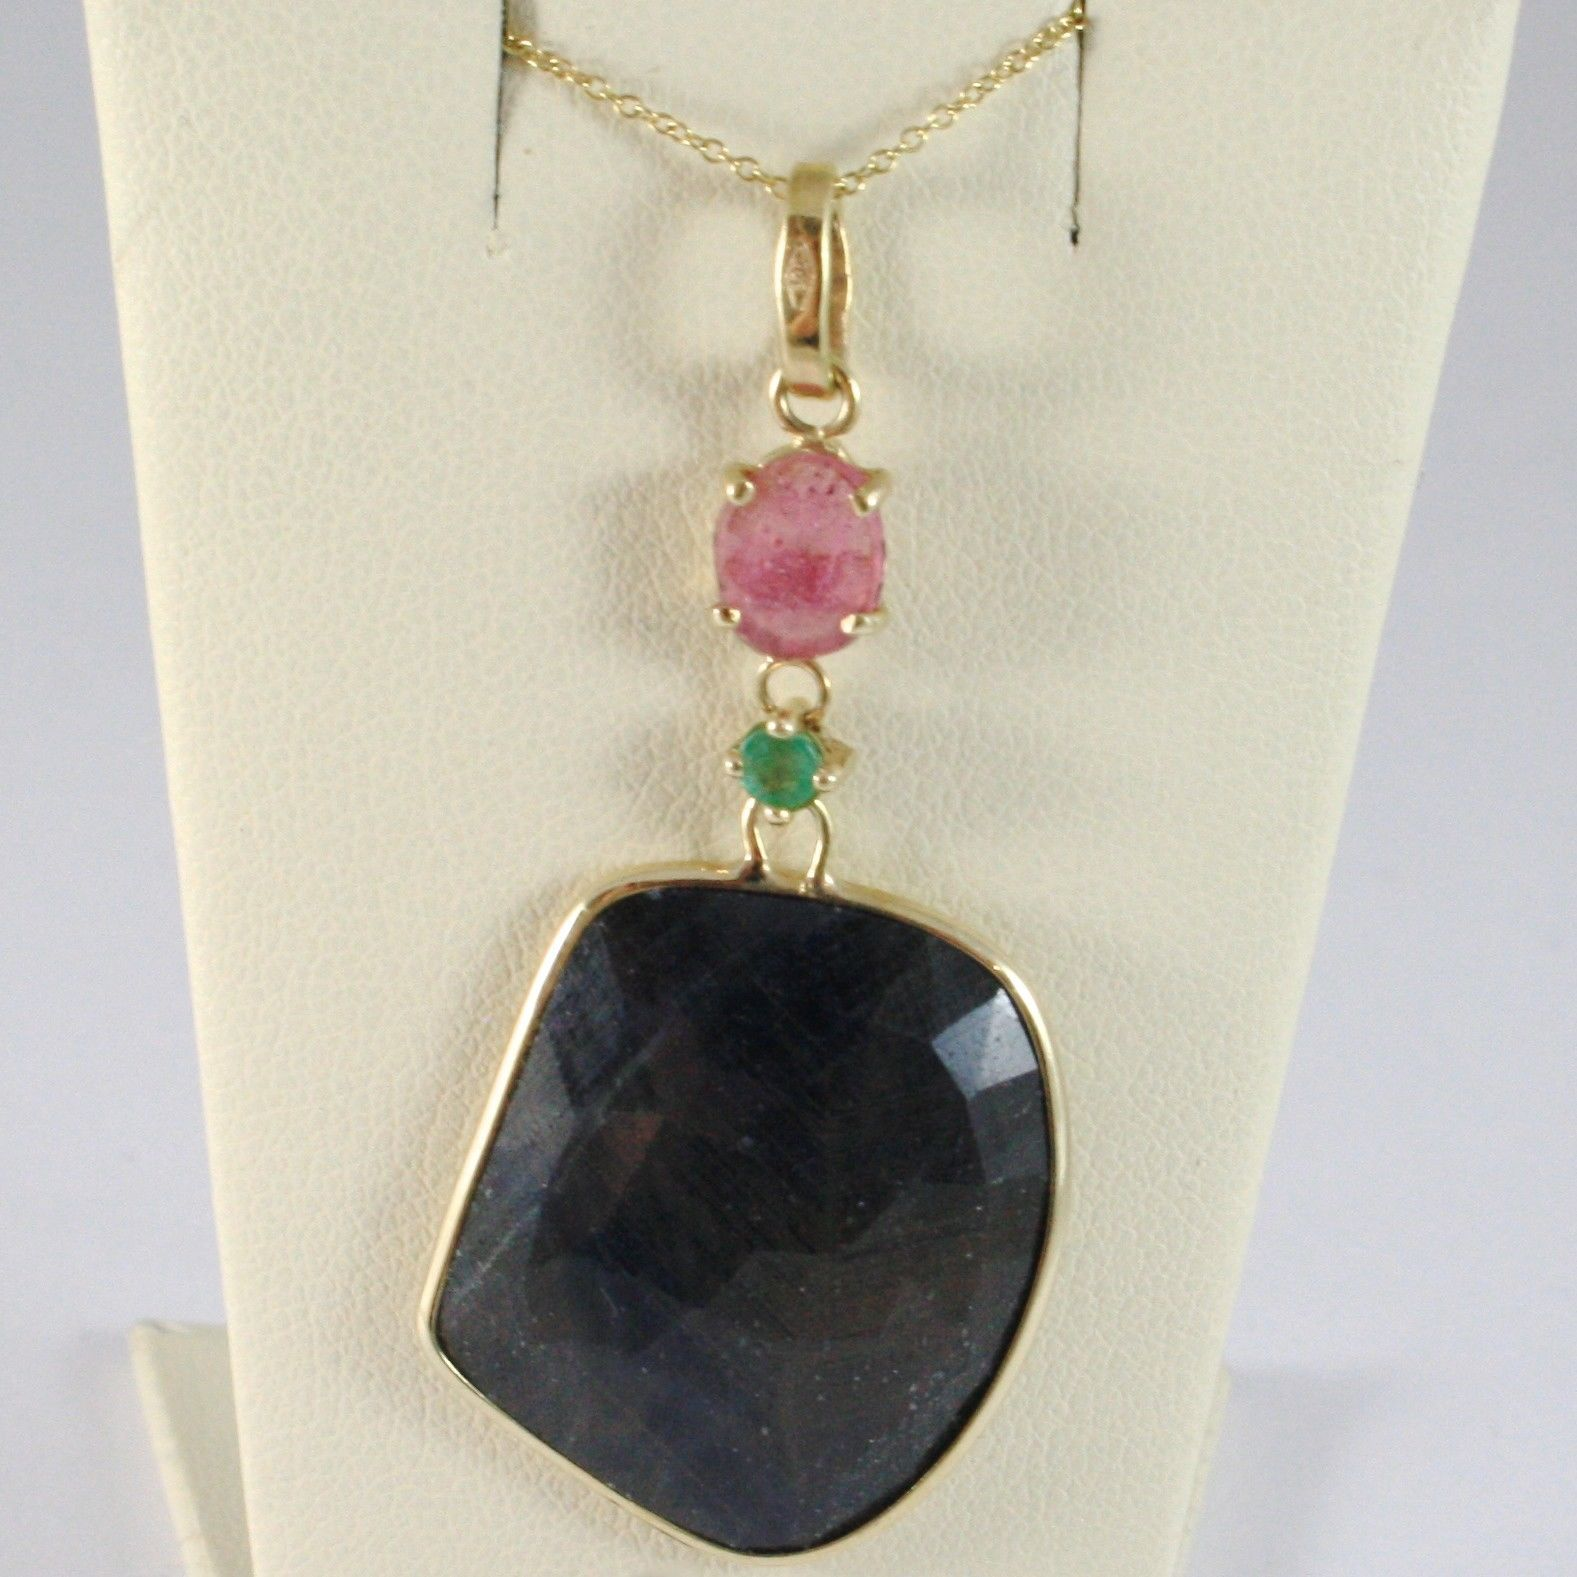 NECKLACE AND PENDANT YELLOW GOLD 375 9K, SAPPHIRES BLUE AND PINK FACETED PERIDOT